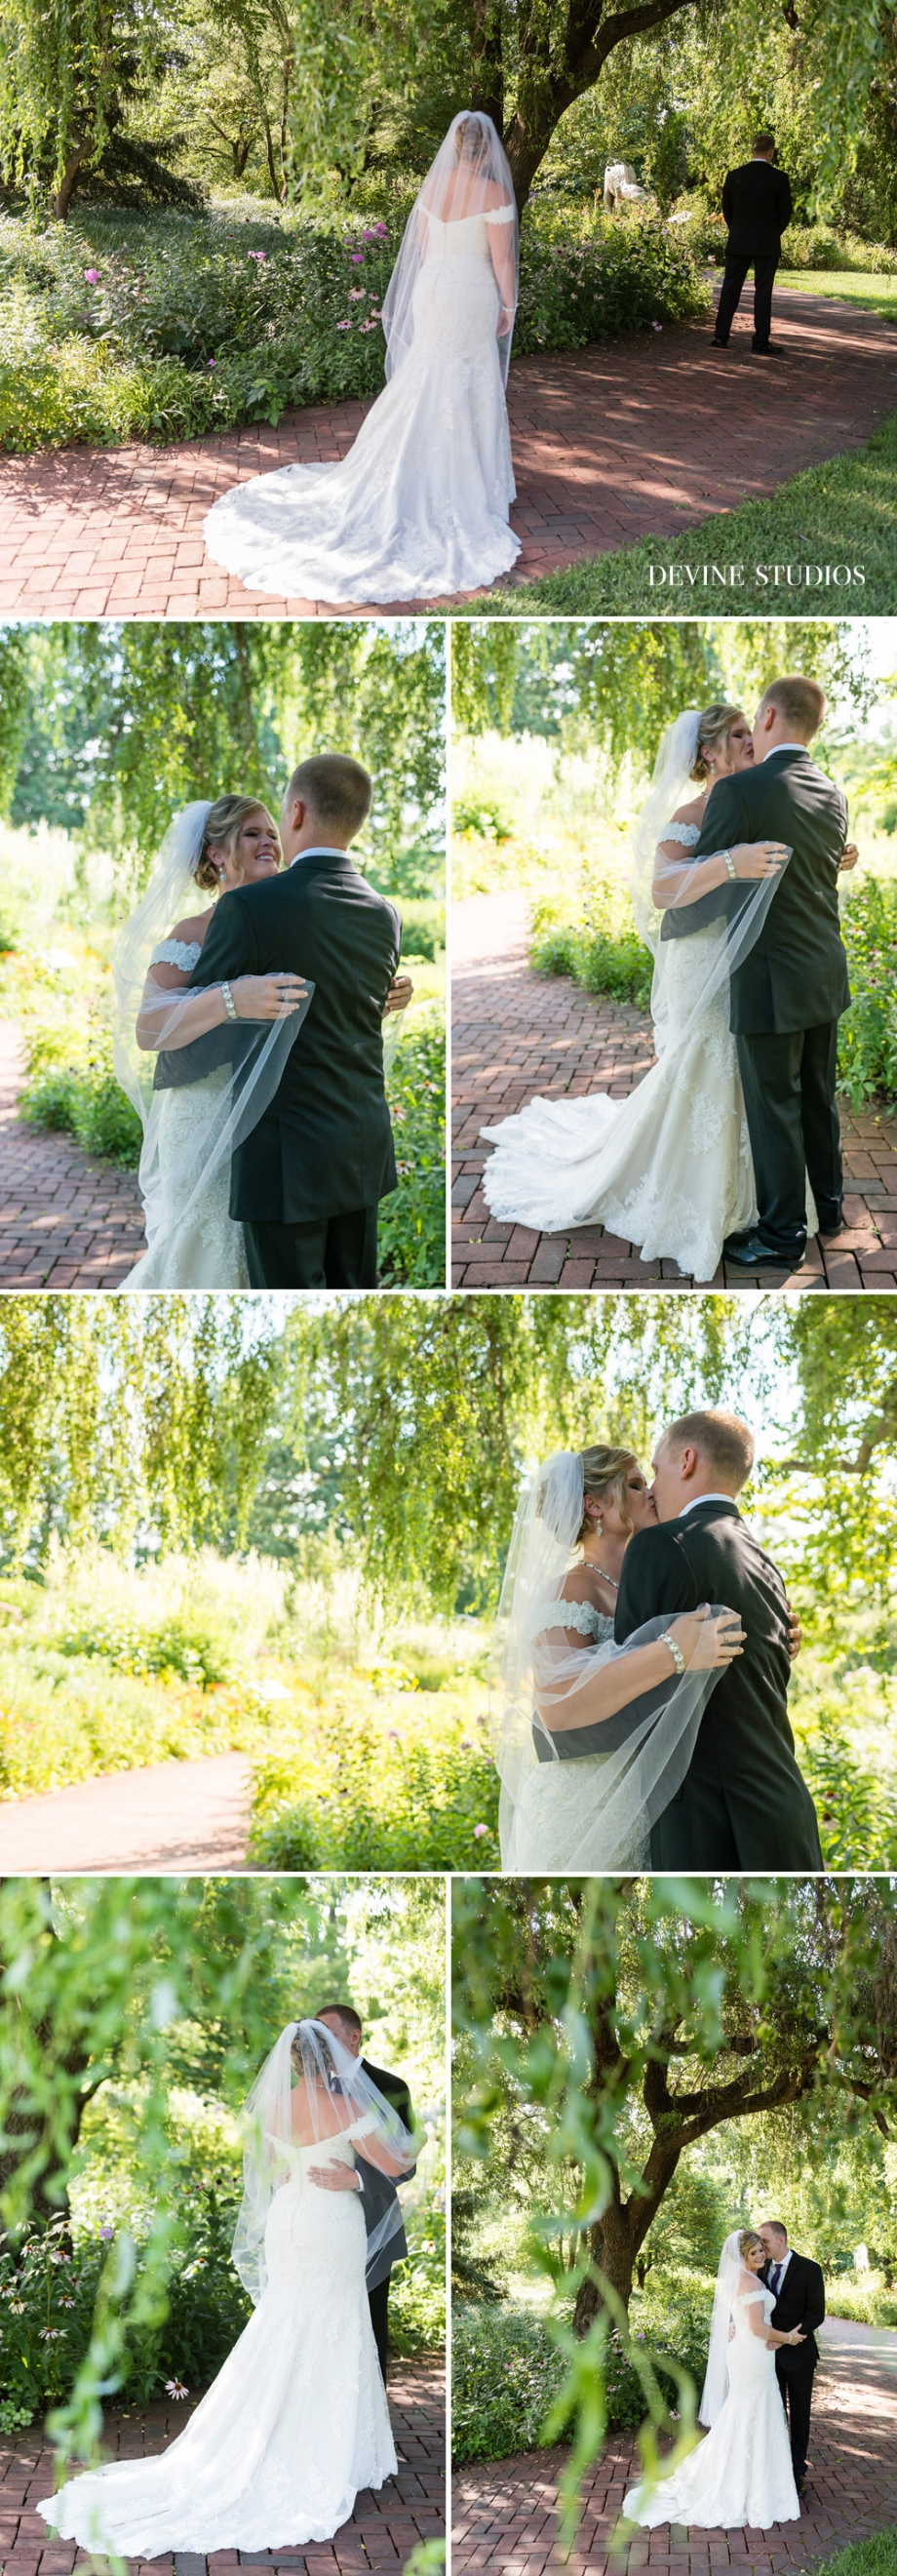 Wedding-Photography-Powell Gardens-Kansas City-Photographers 3